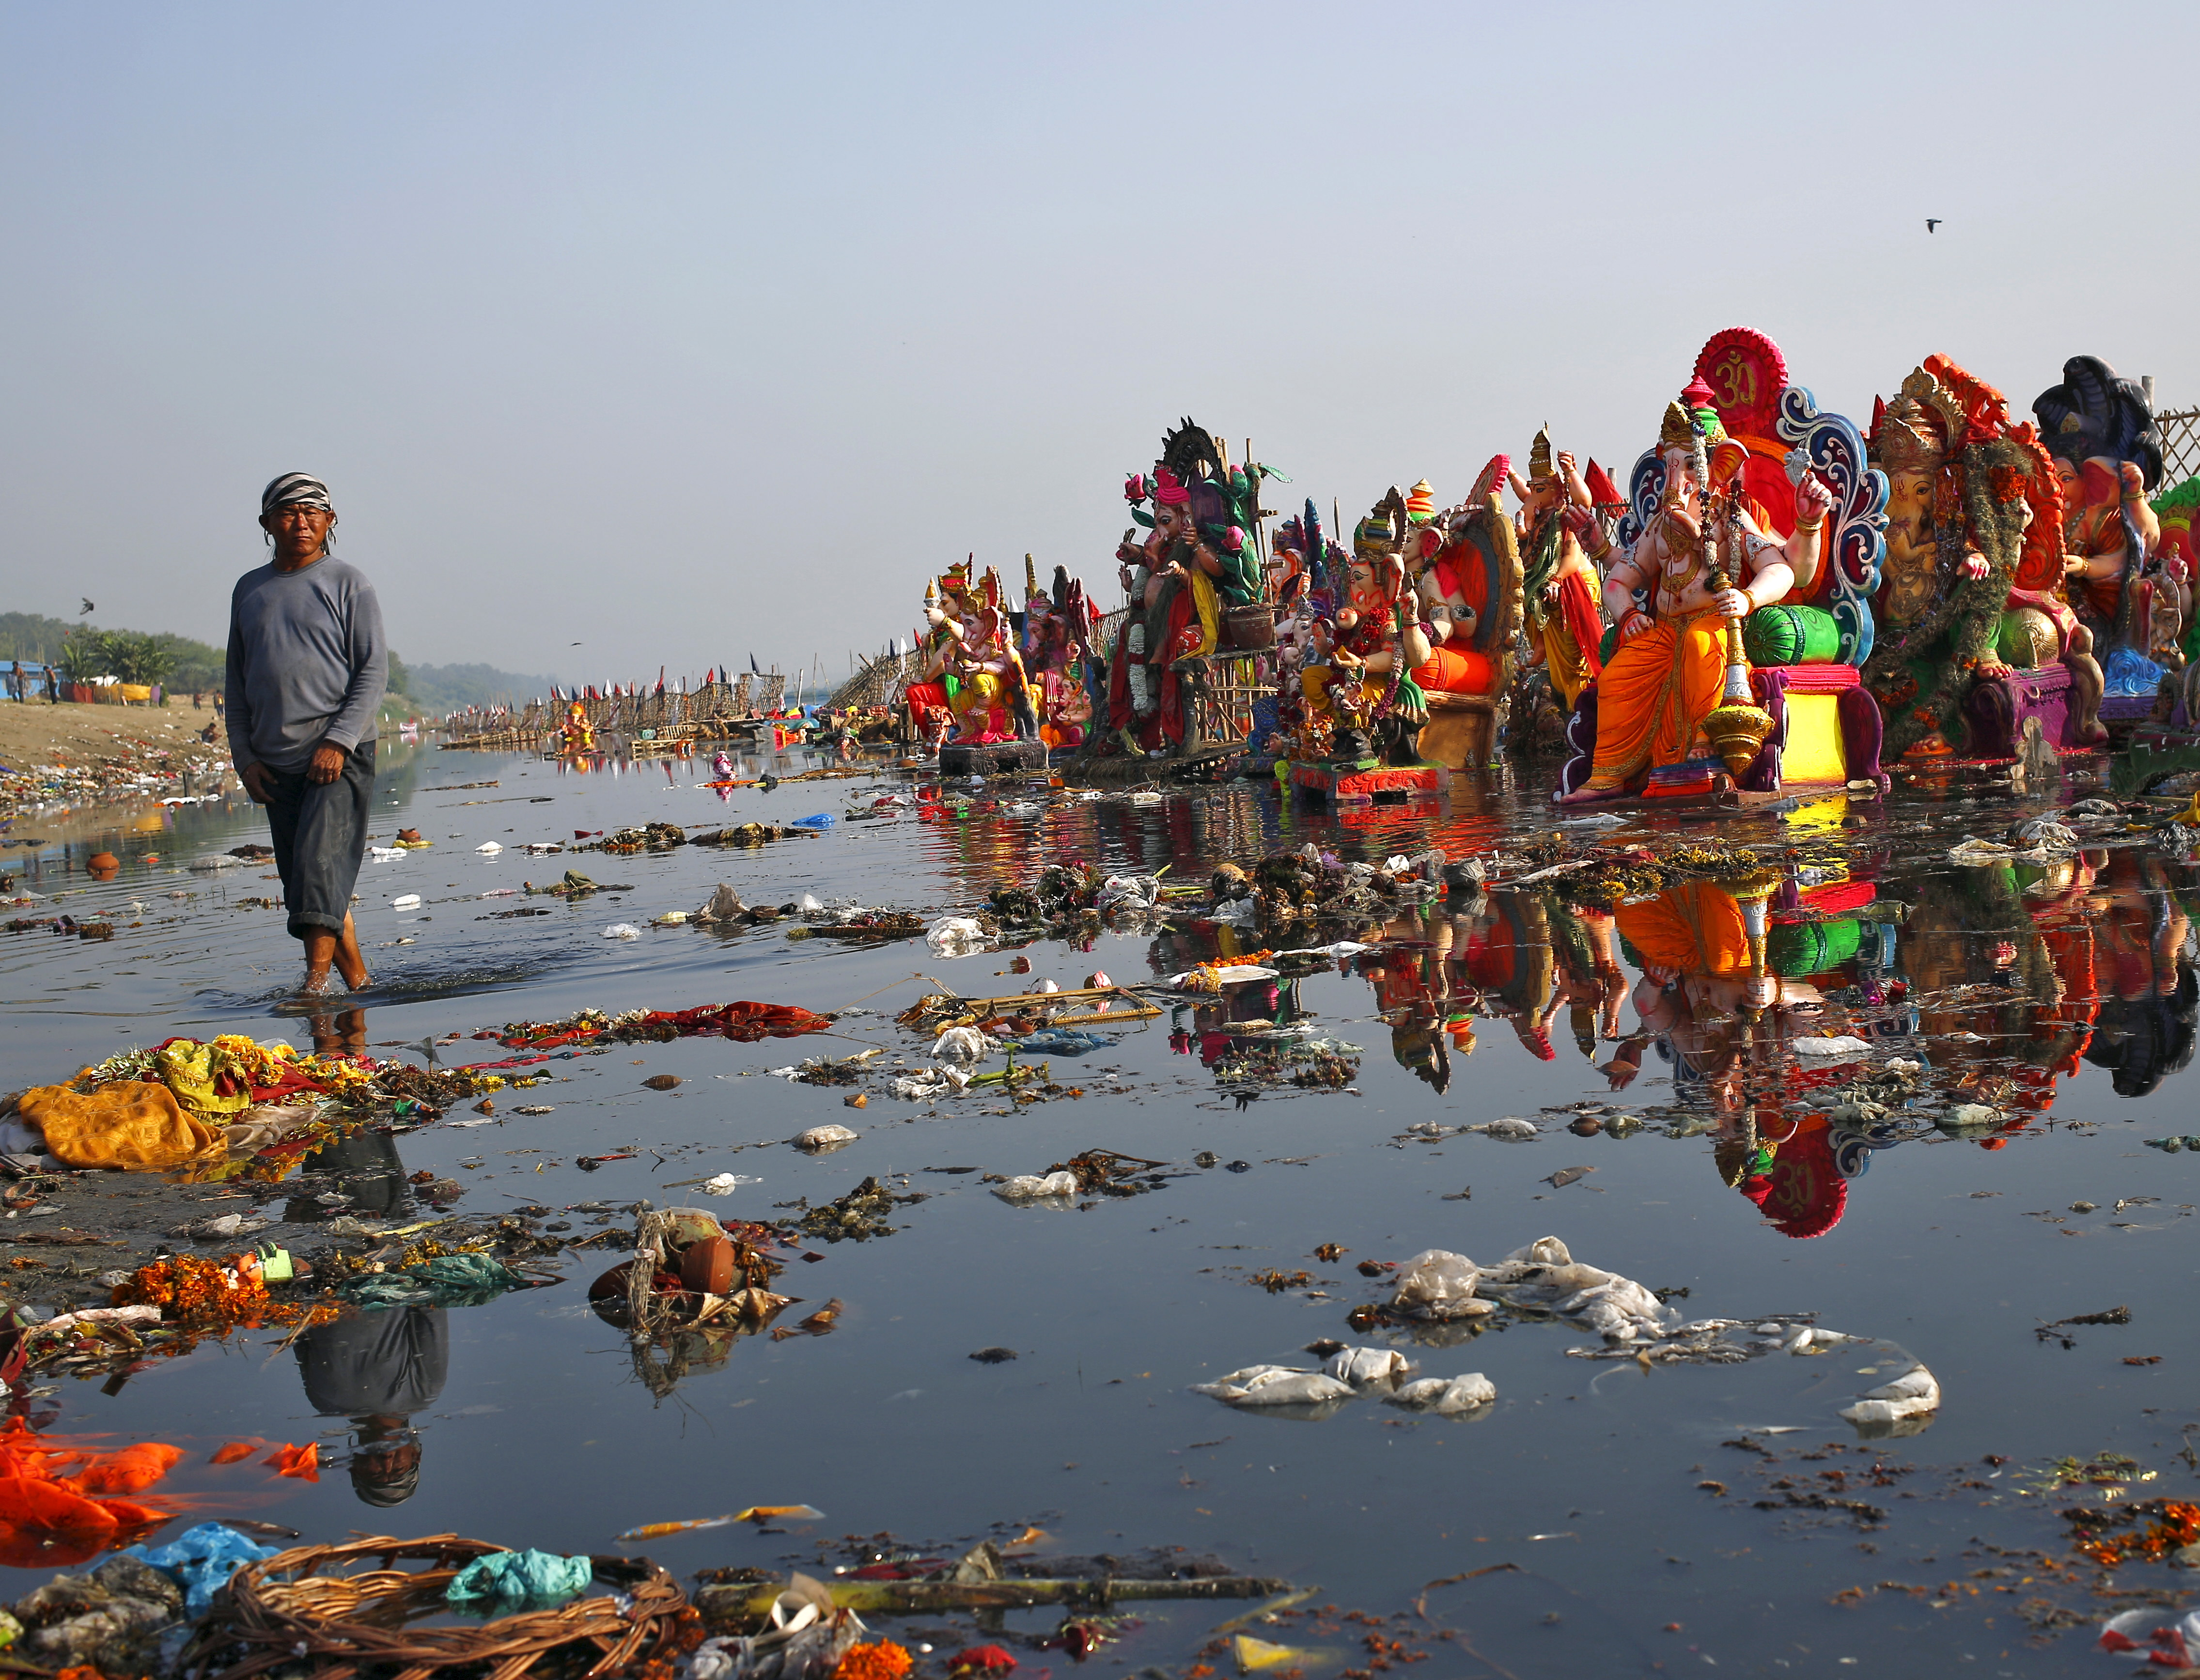 Man looks on as he collects items thrown by devotees as religious offerings next to idols of Hindu god Ganesh in waters of Yamuna river in New Delhi